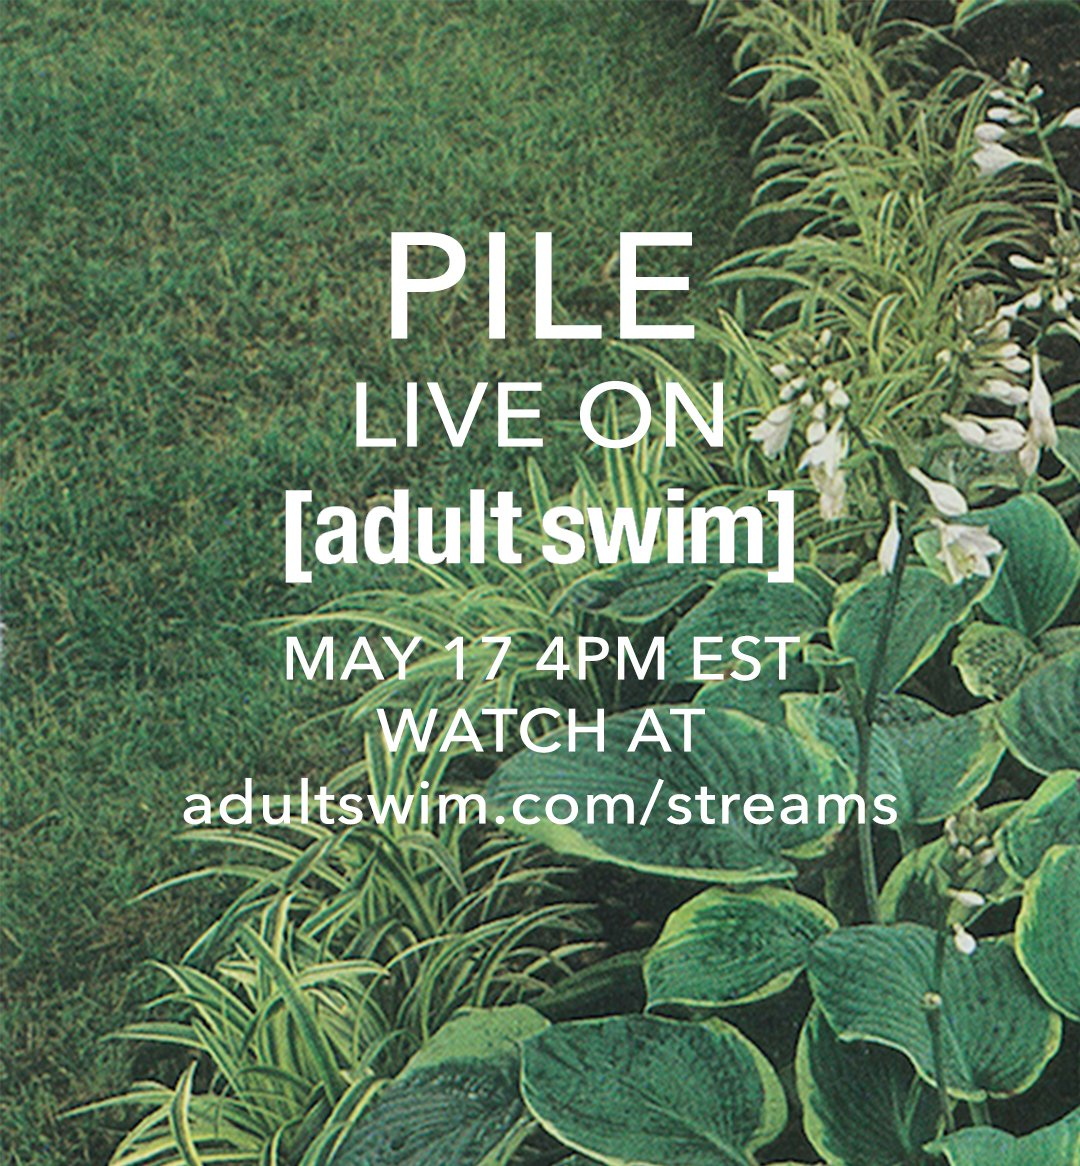 Friday afternoon catch @pilemusic playing some songs on the @adultswim live stream. Go see them on tour now! http://adultswim.com/streams